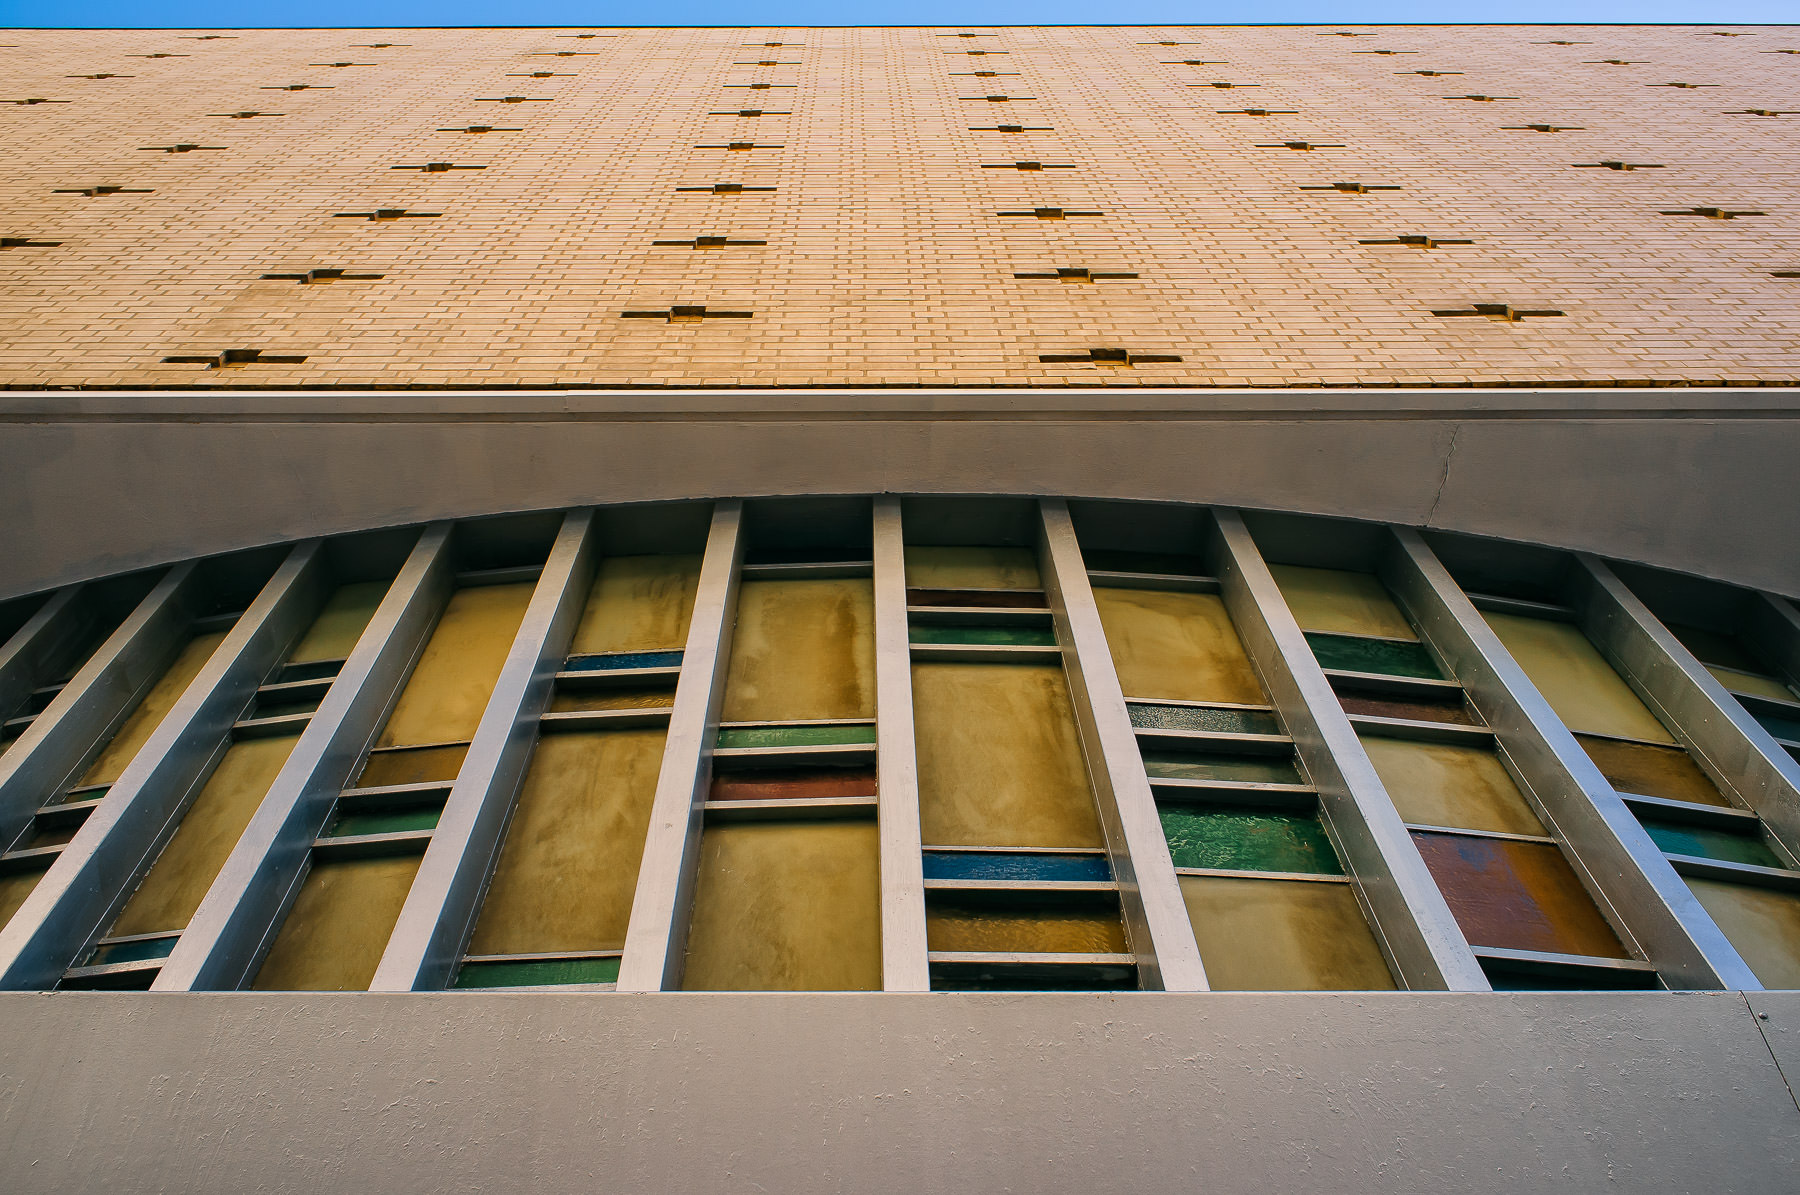 Exterior detail of the long-abandoned Statler Hilton Hotel in Downtown Dallas.